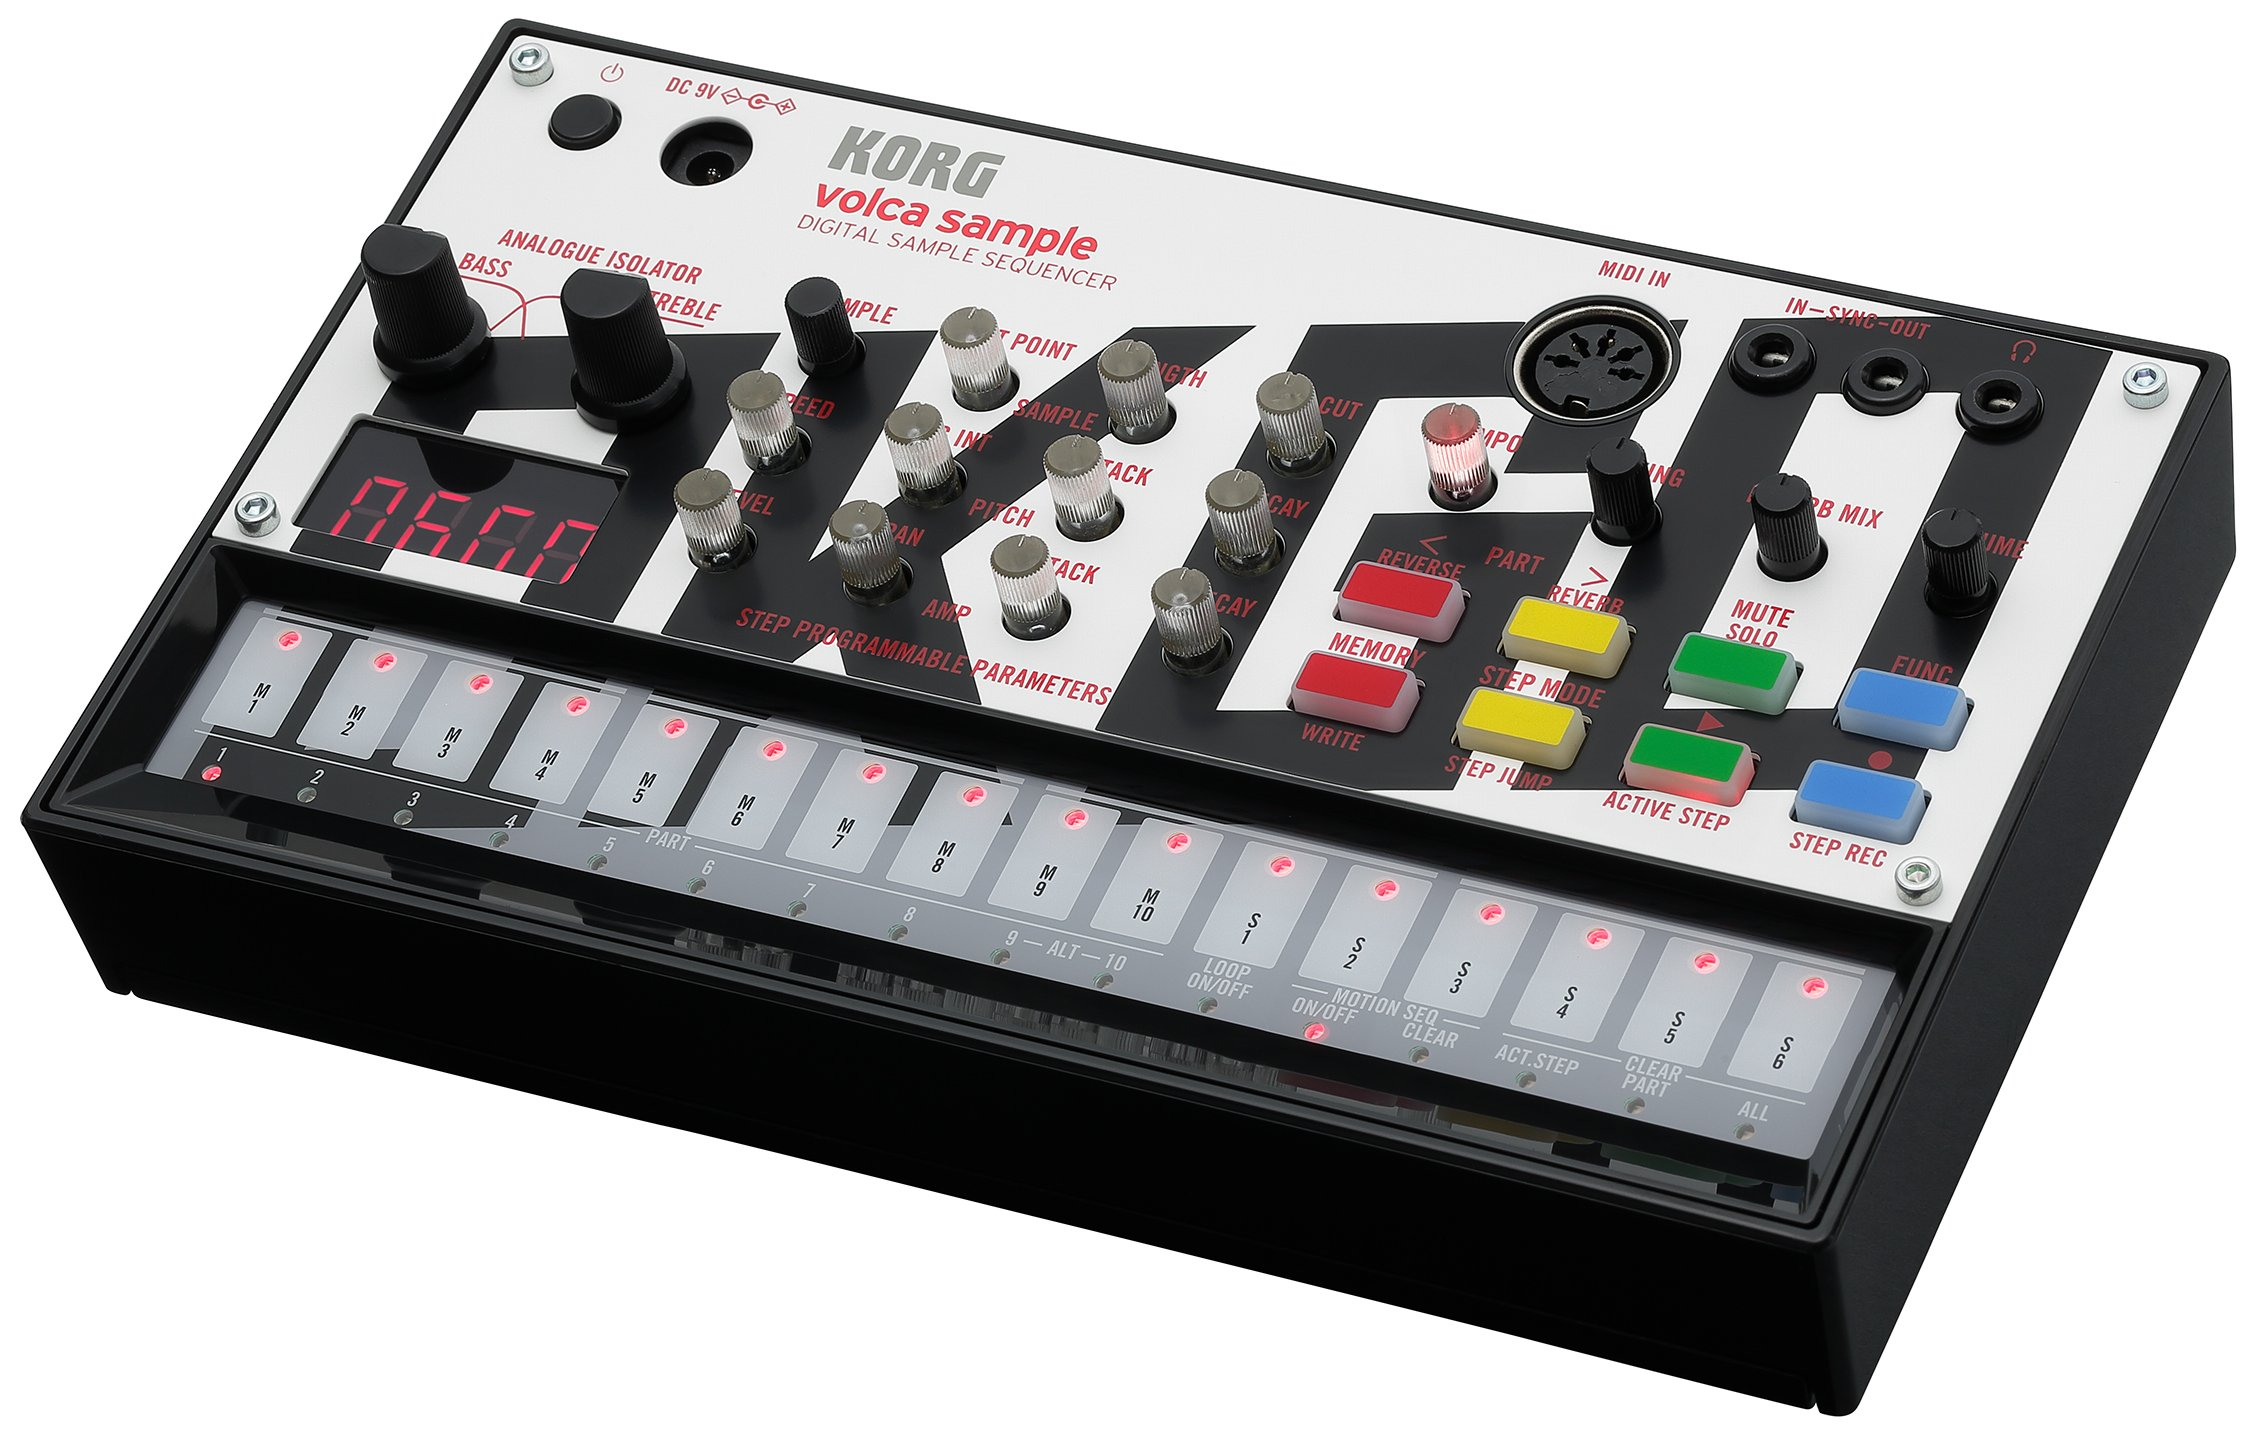 Korg VOLCAOKGO Limited Edition Version Volca Sample with Content & Panel Graphic (Created by OKGO) by Korg (Image #2)